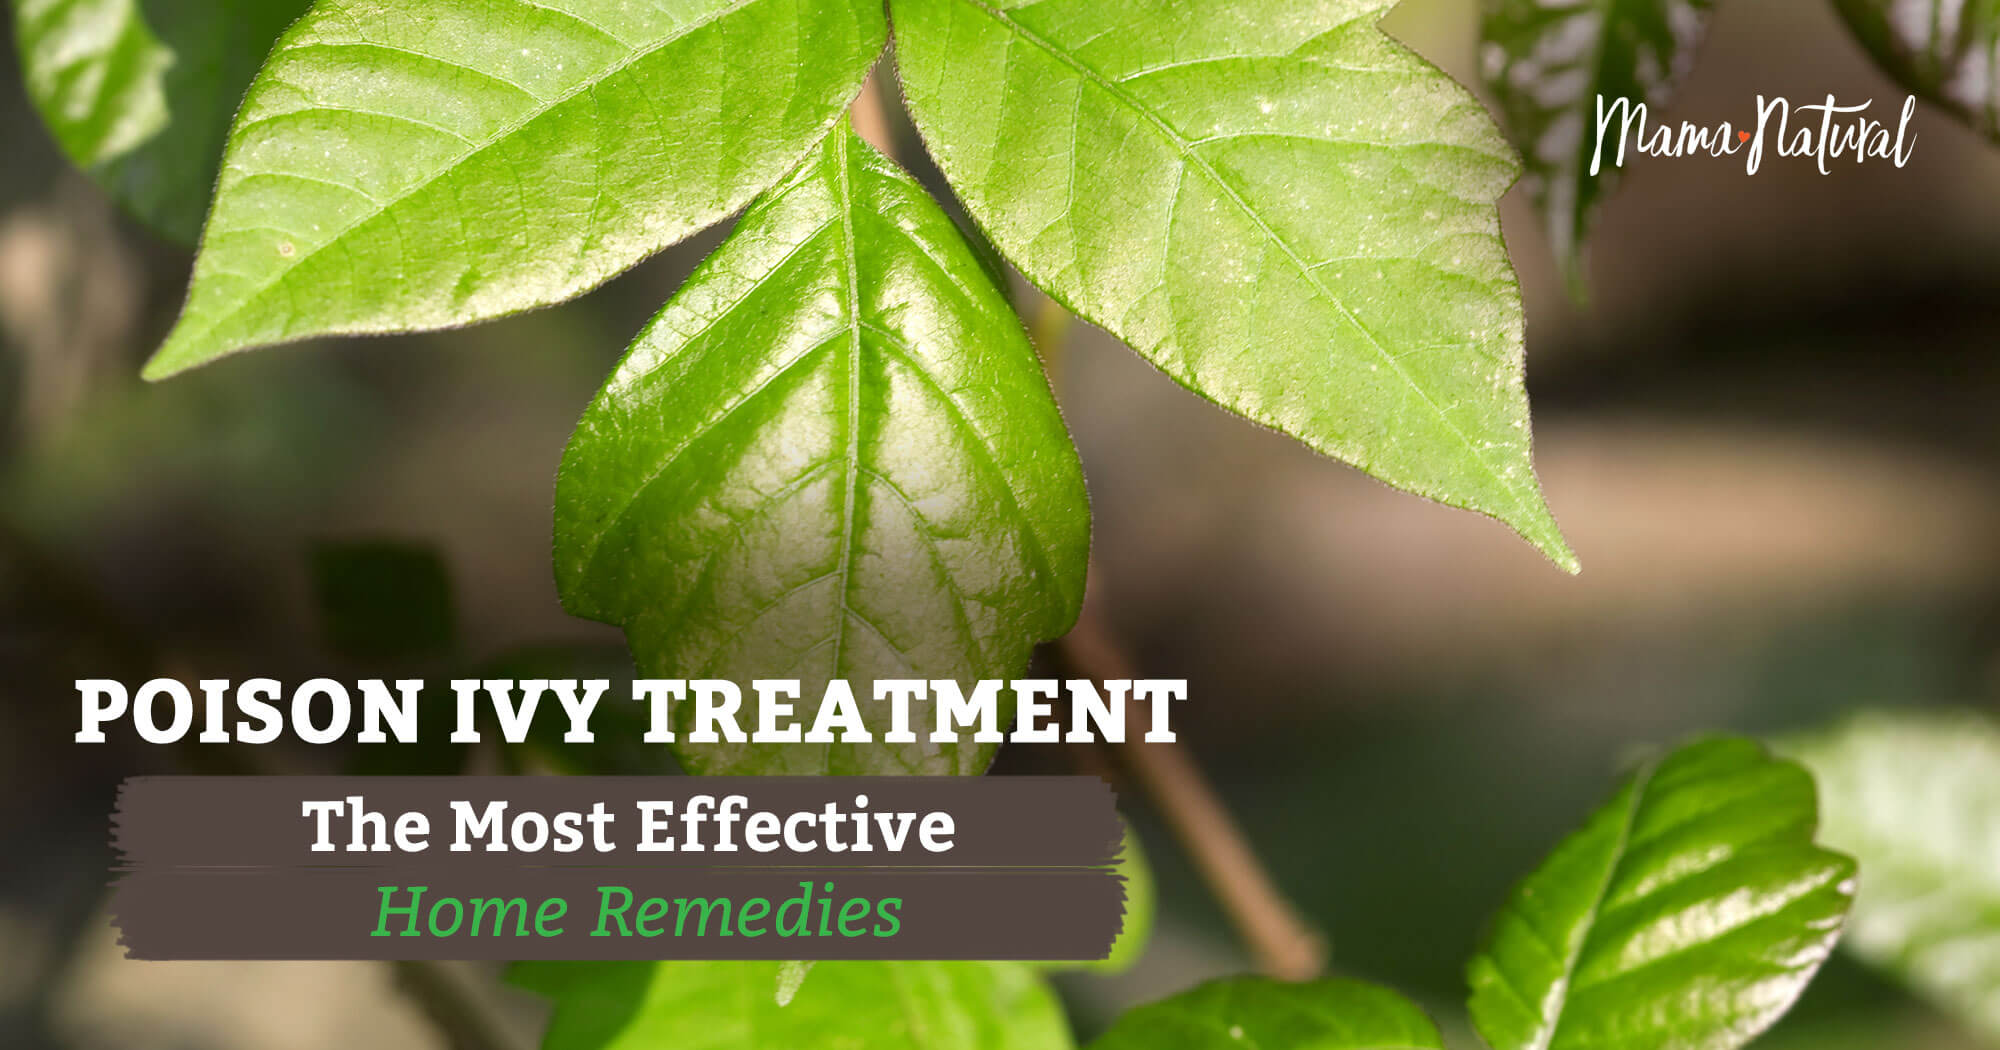 Poison Ivy Treatment All Natural Home Remedies Mama Natural